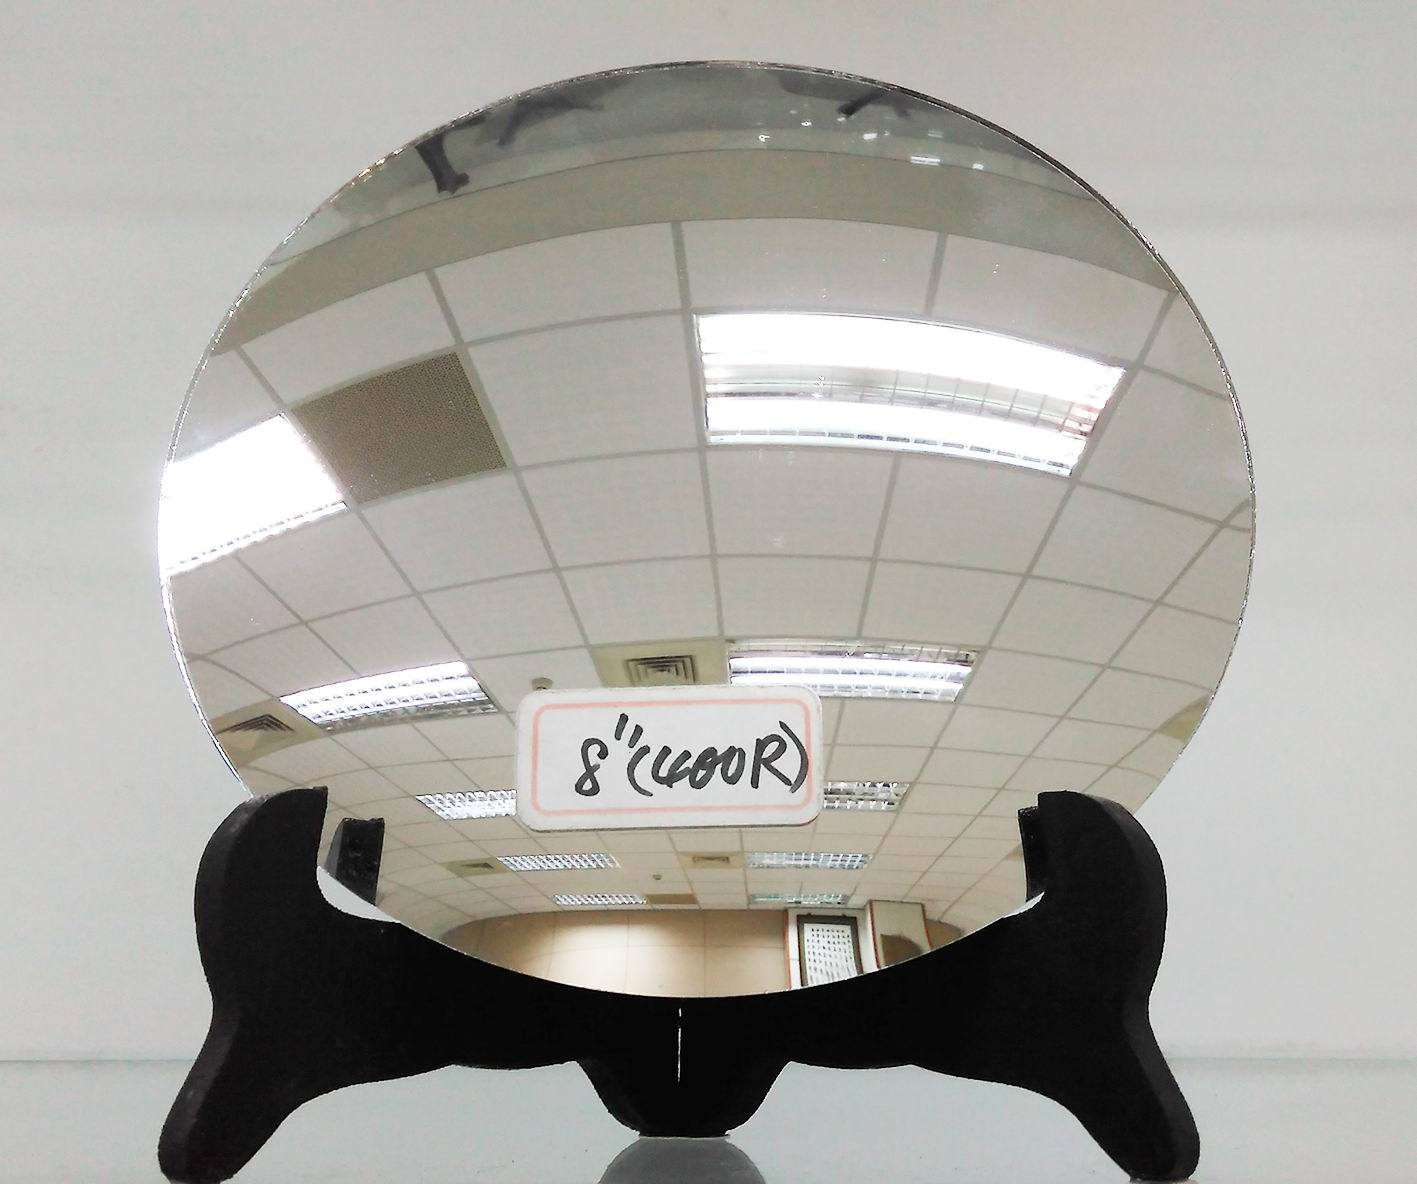 "8""400 CURVE WIDE ANGLE MIRROR"